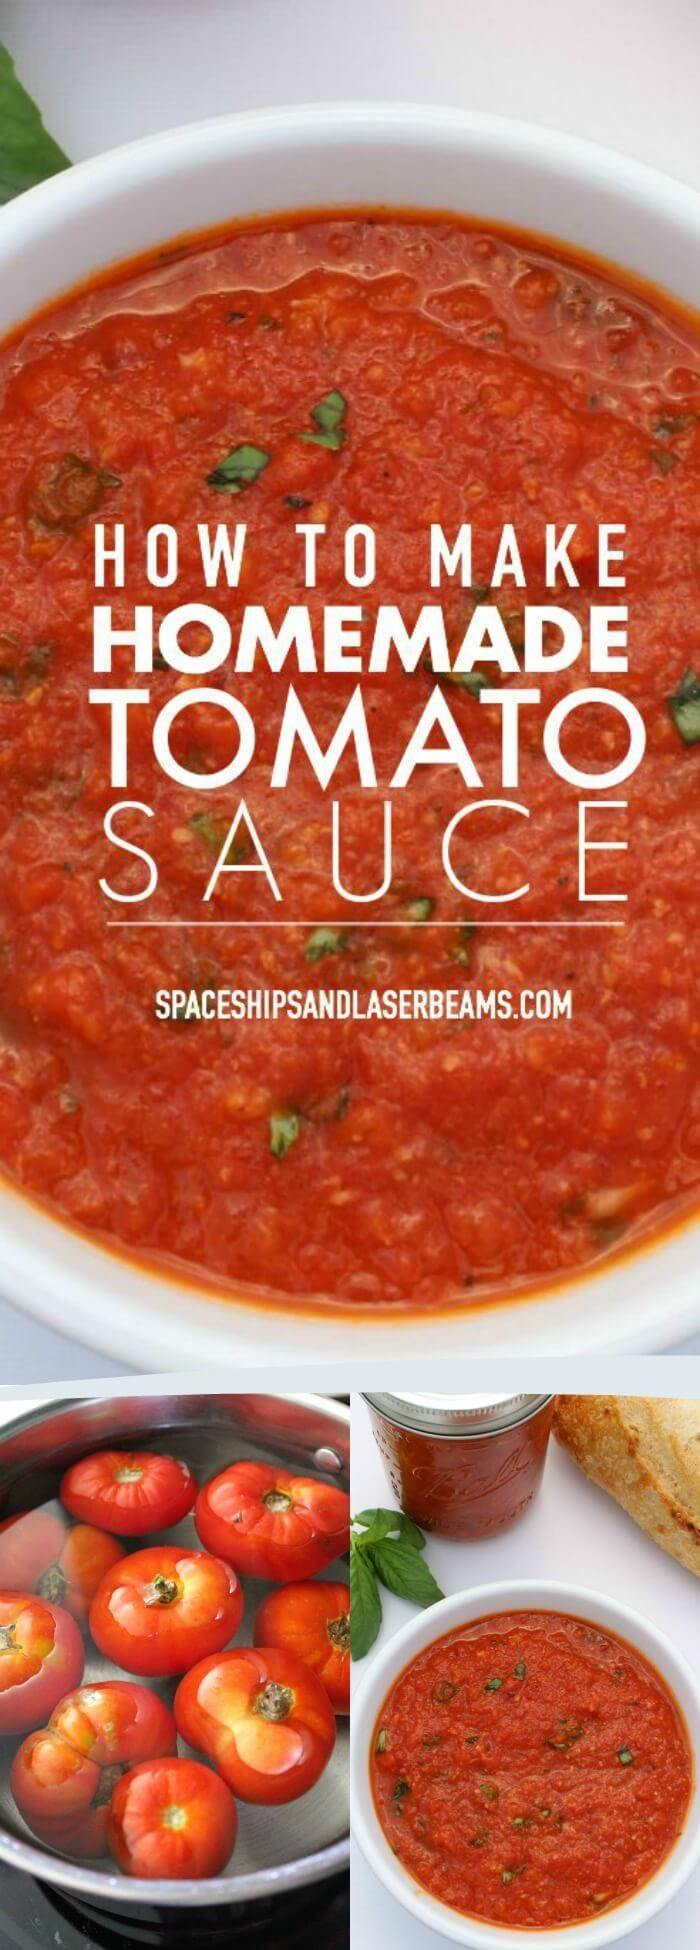 How To Make Homemade Pasta Sauce  ITALIAN SPAGHETTI SAUCE and CANNING INSTRUCTIONS